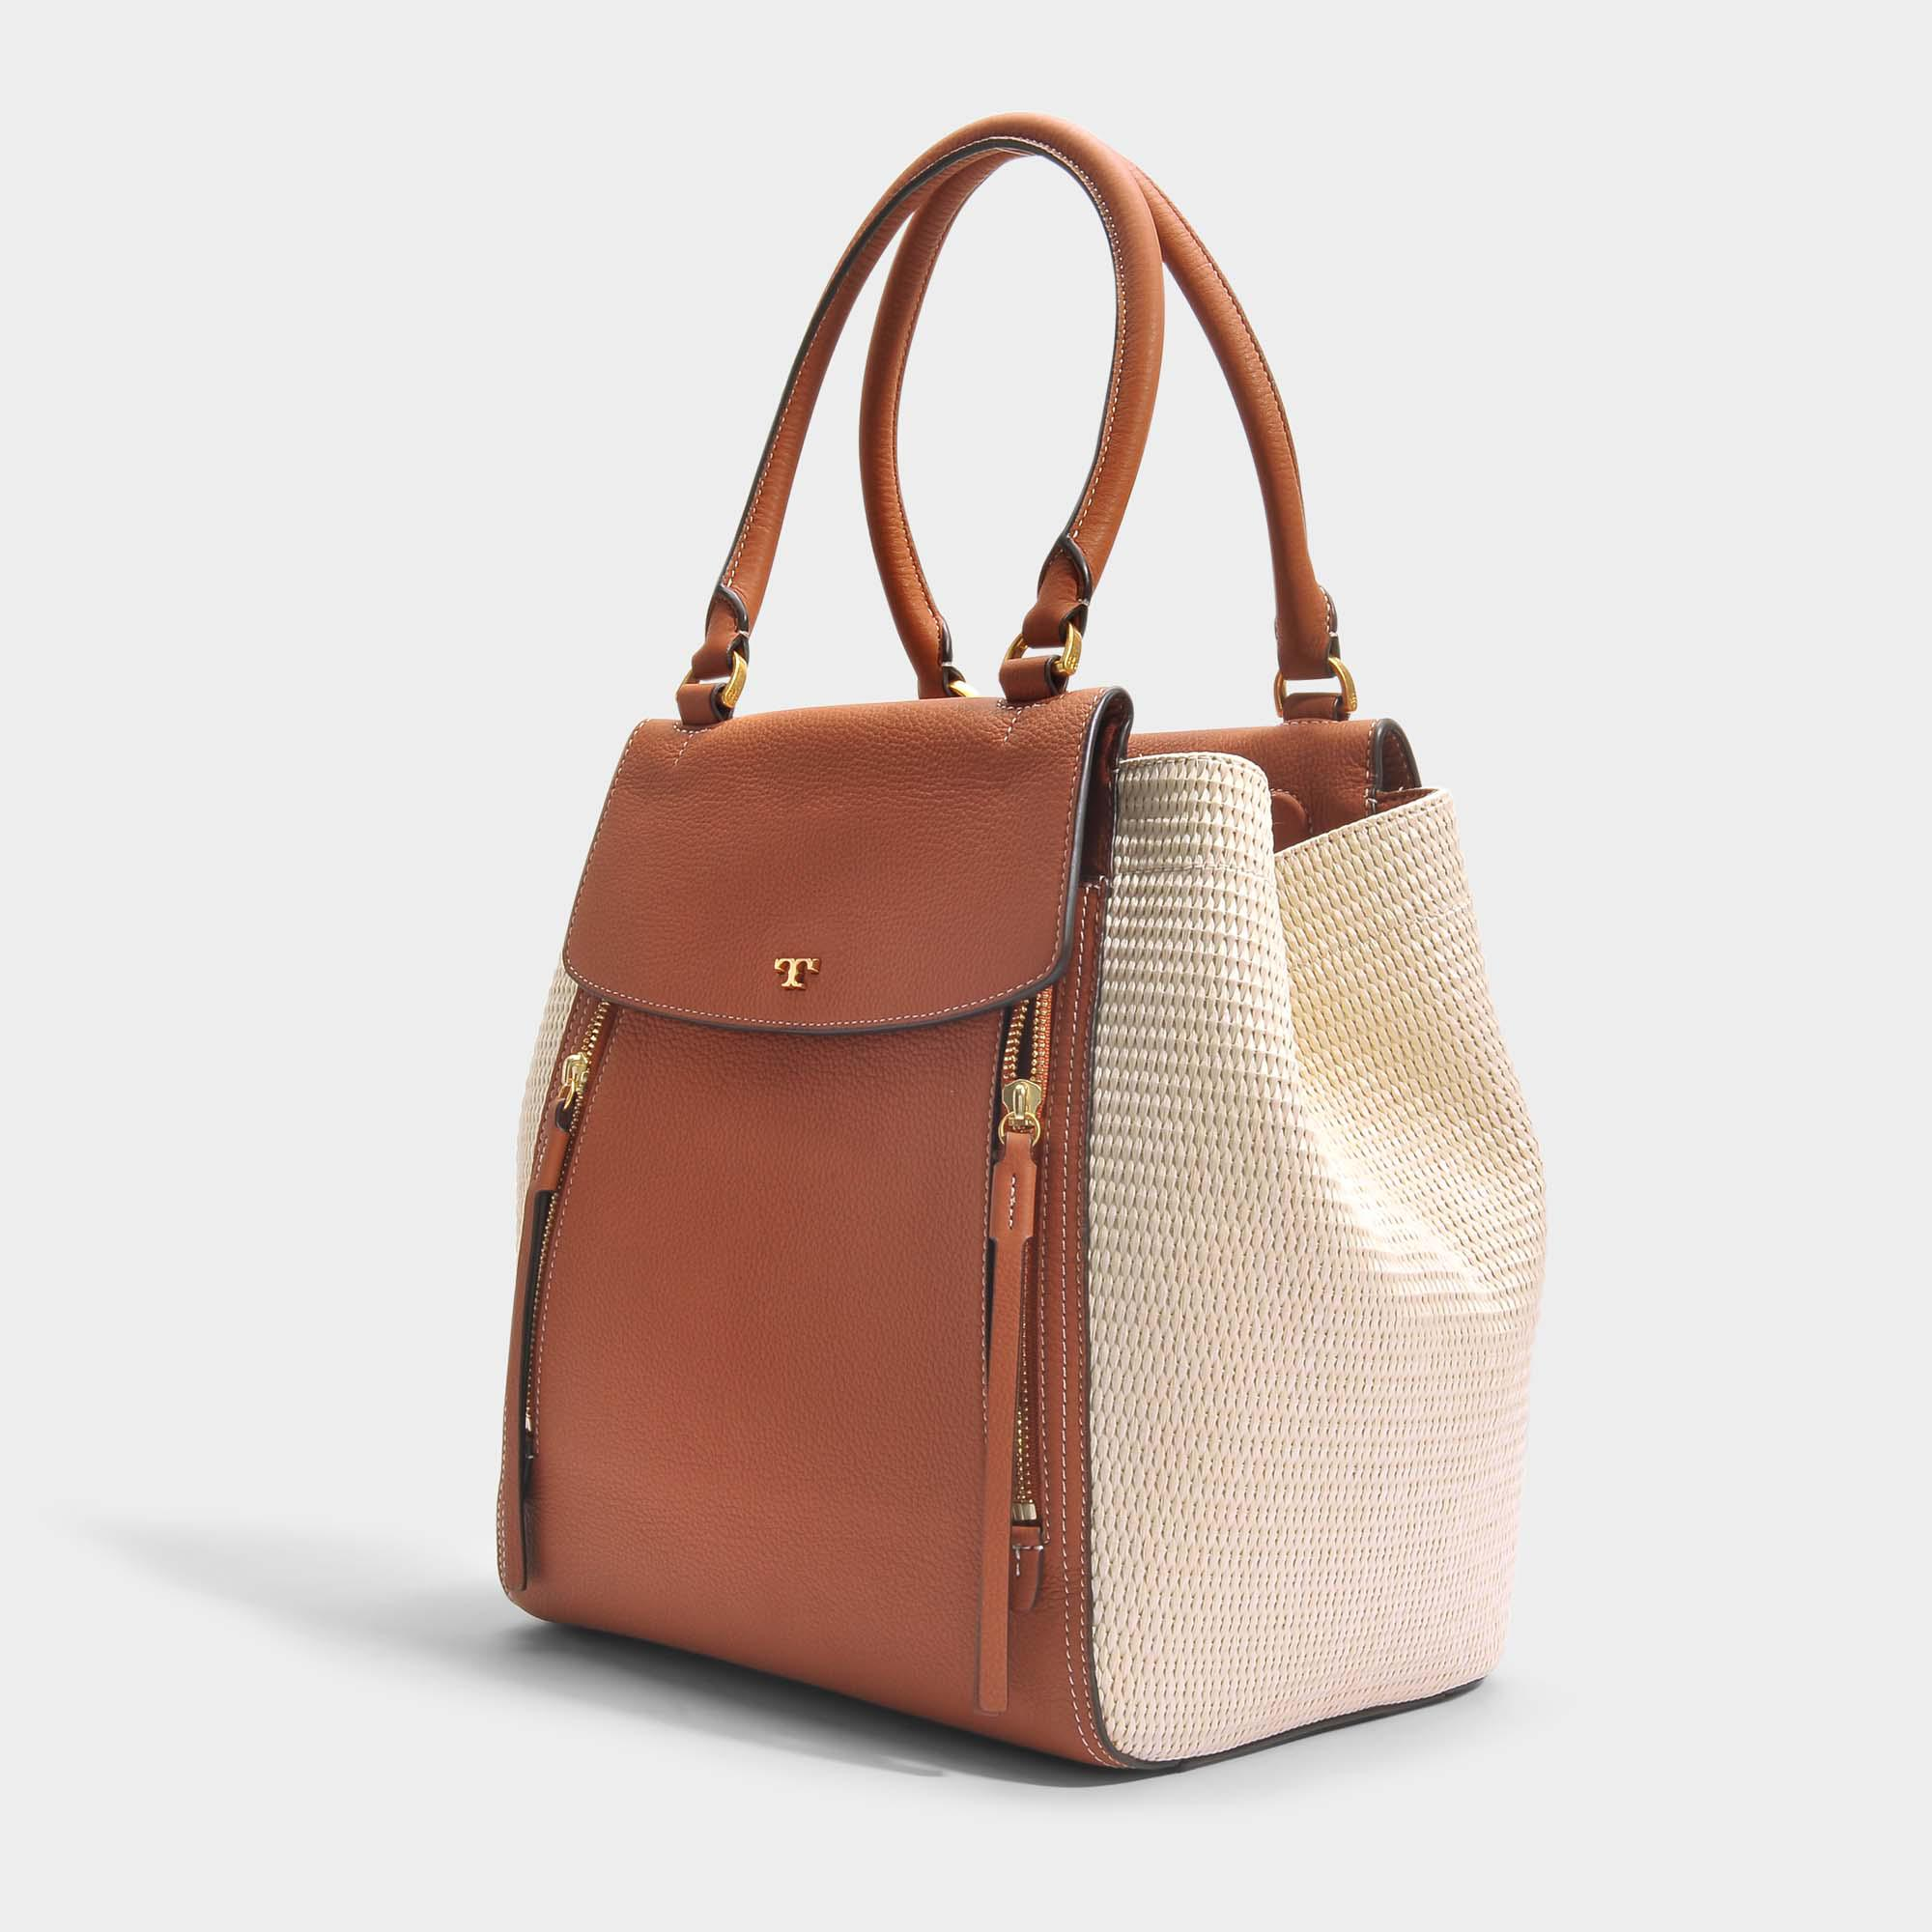 6c5a7ef9070f Lyst - Tory Burch Half-moon Straw Tote Bag In Natural And Classic ...